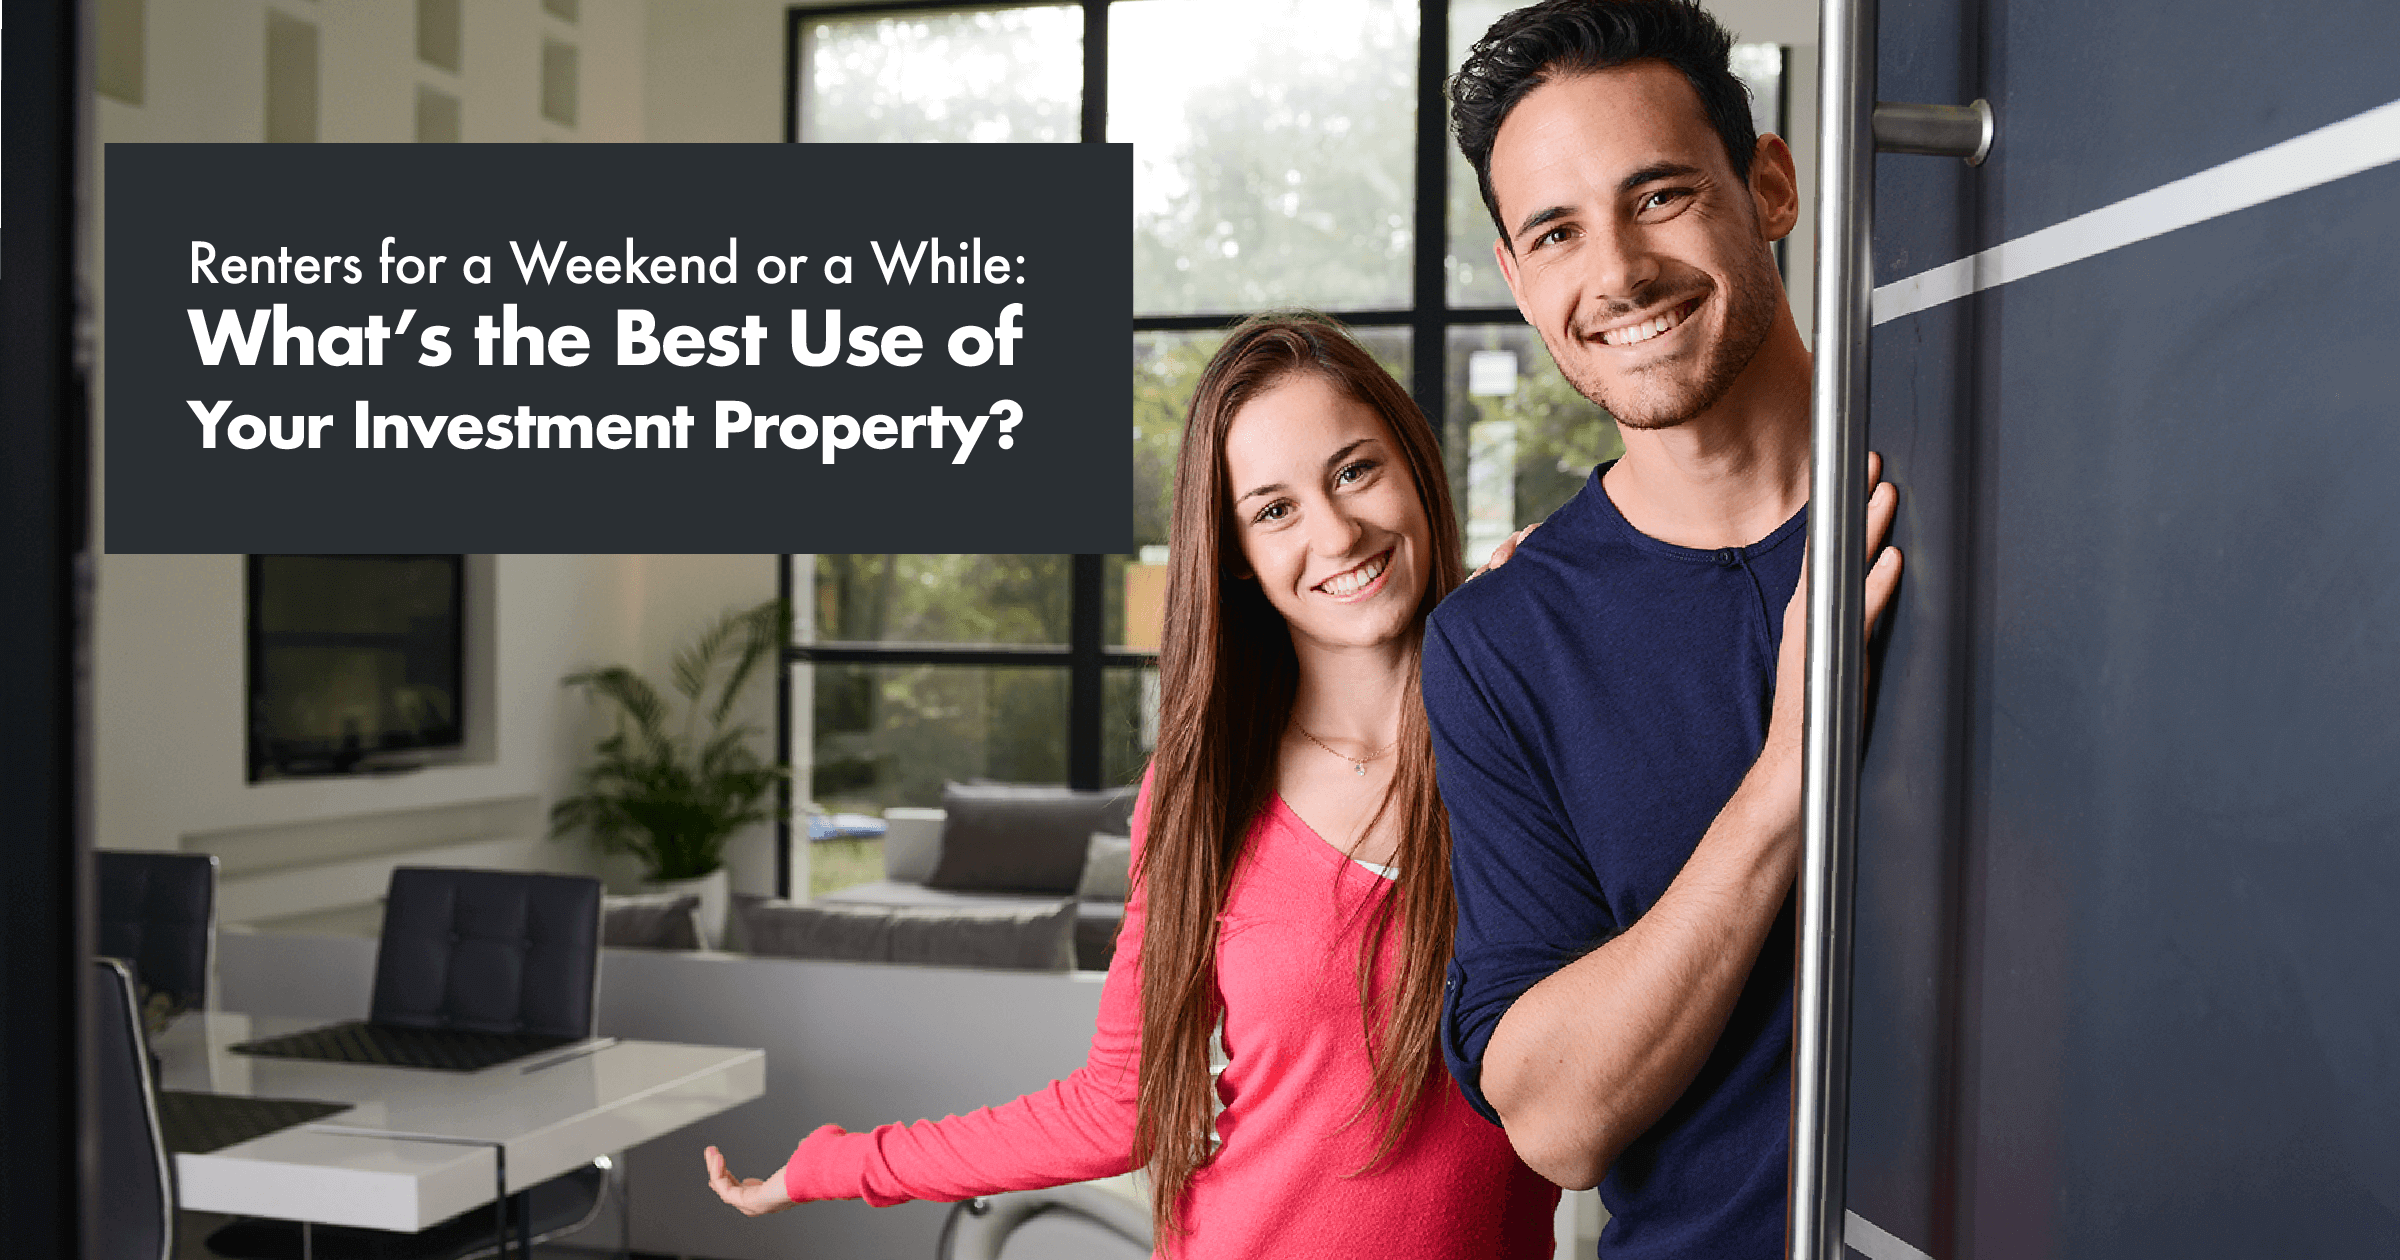 Renters for a Weekend or for a While… What's the Best Use for Your Investment Property?